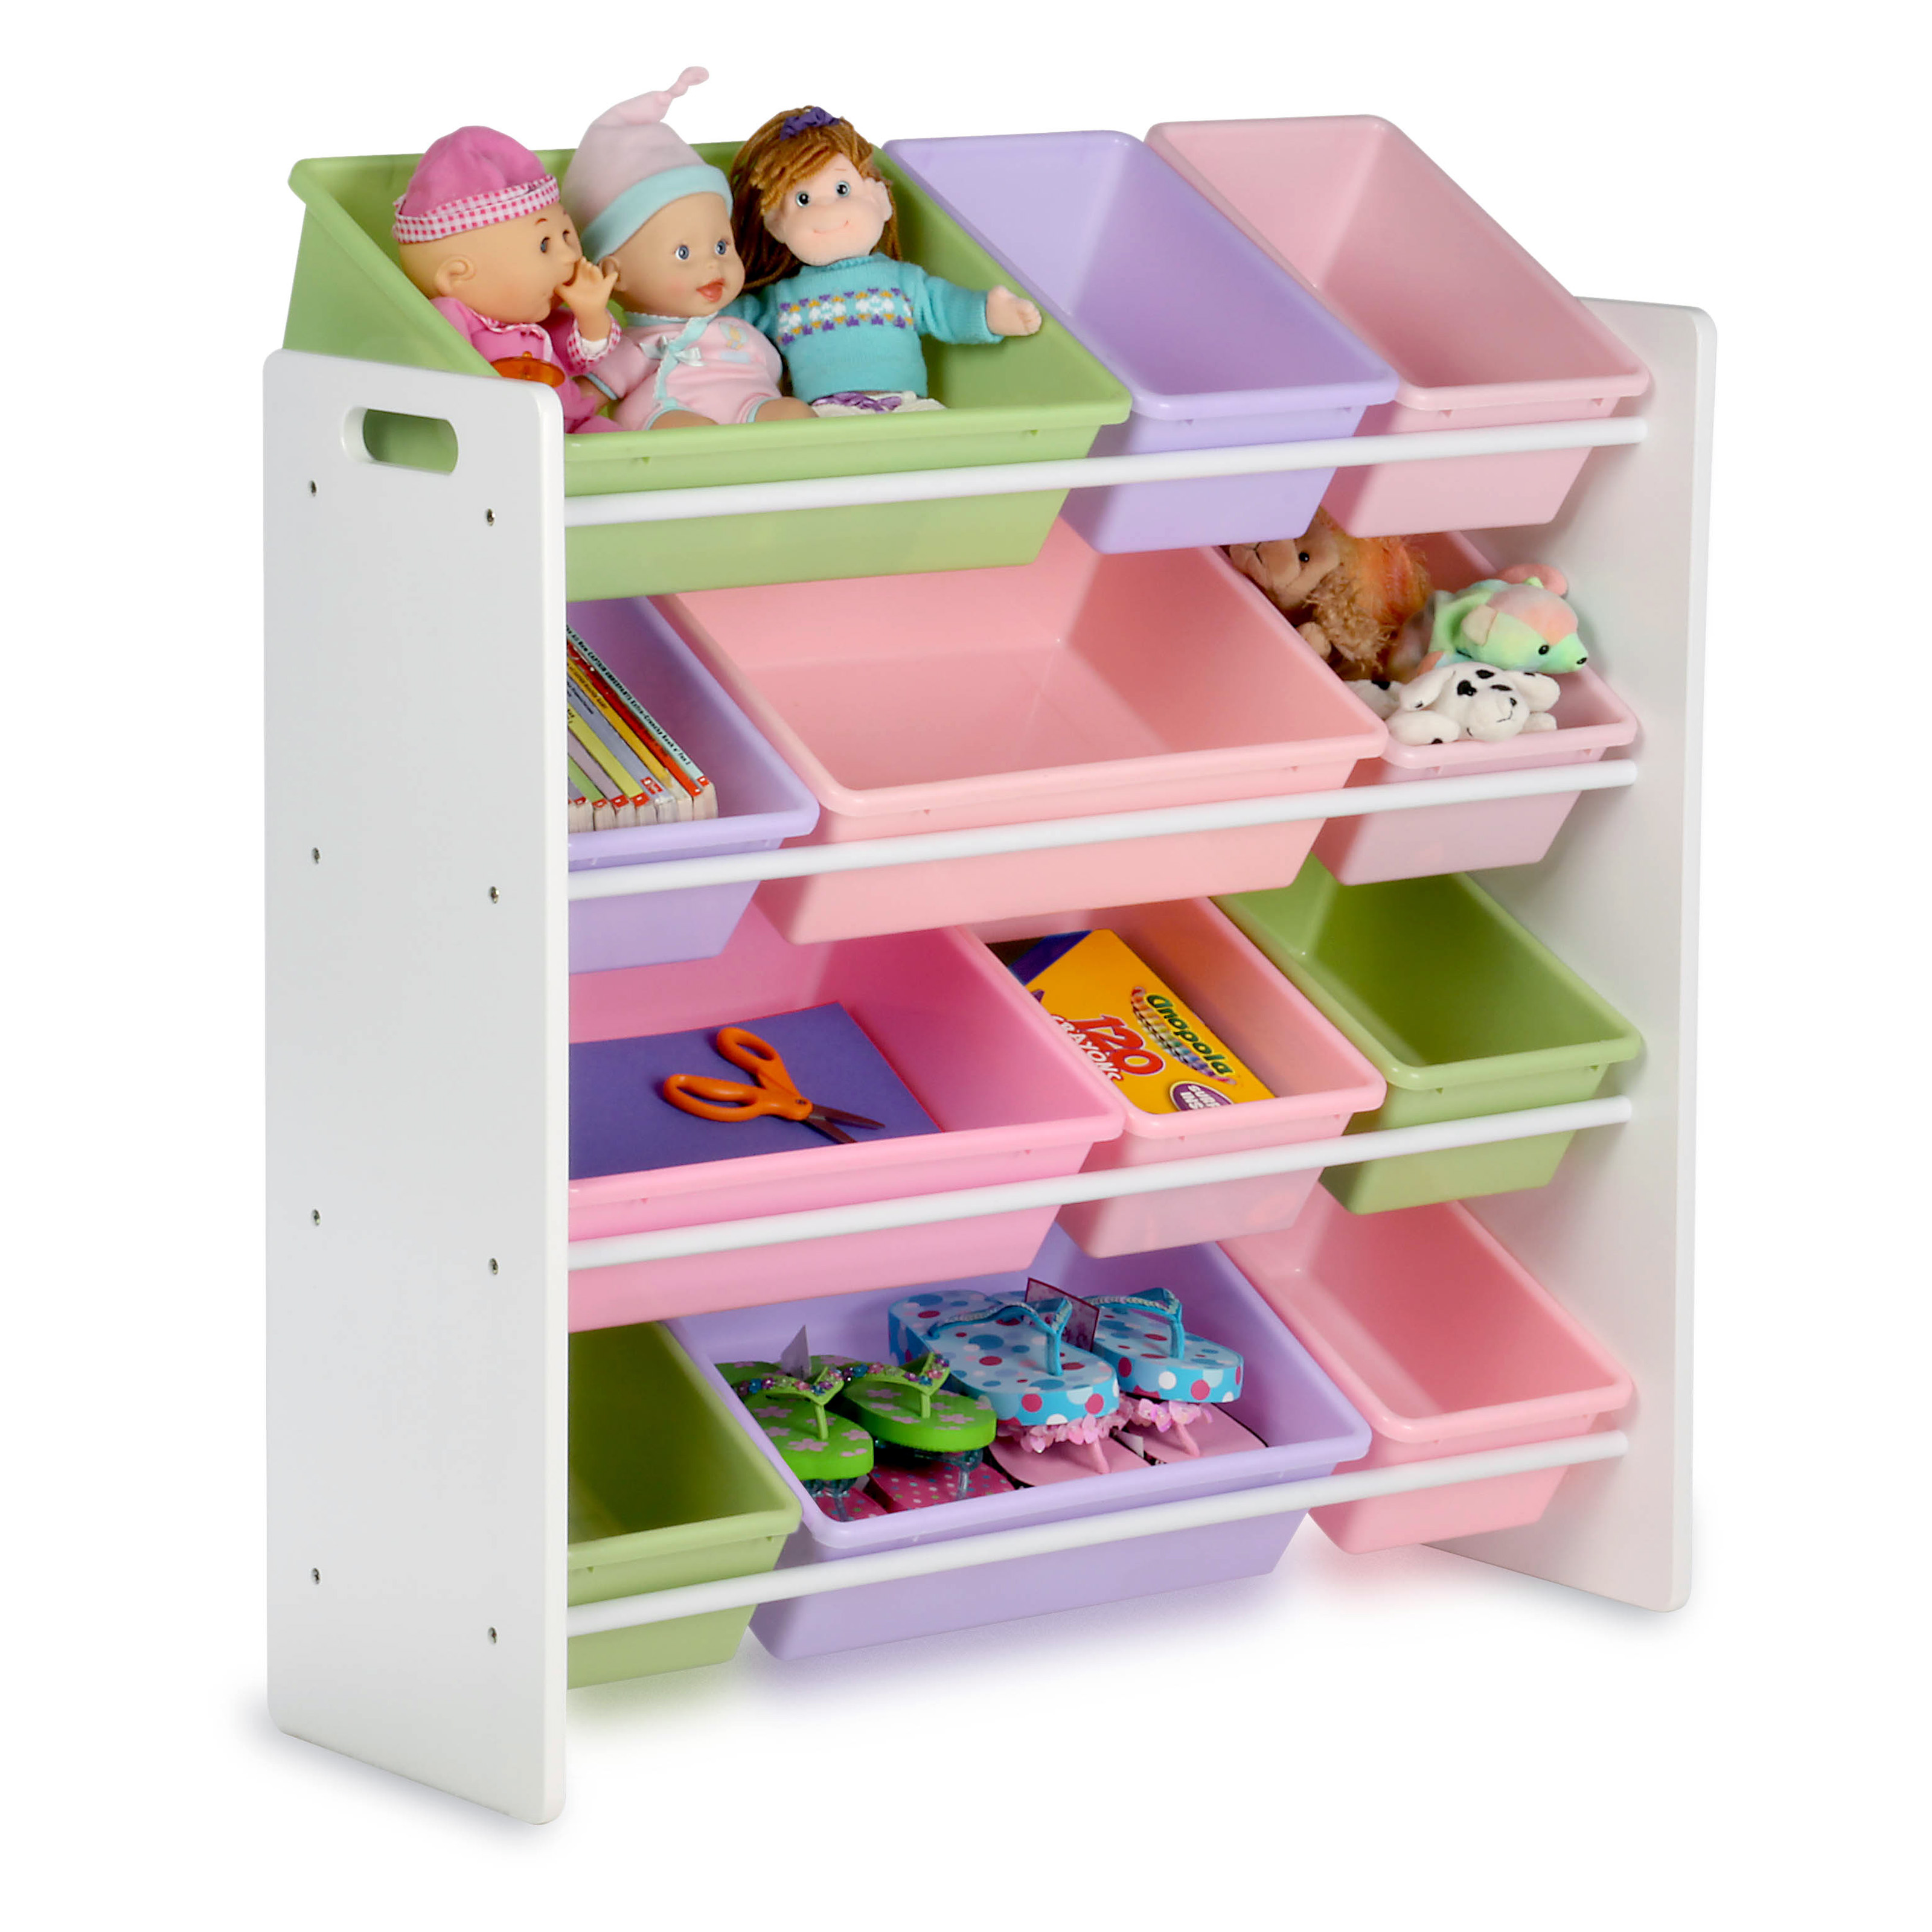 Honey Can Do Kids Storage Organizer   12 Bins   White